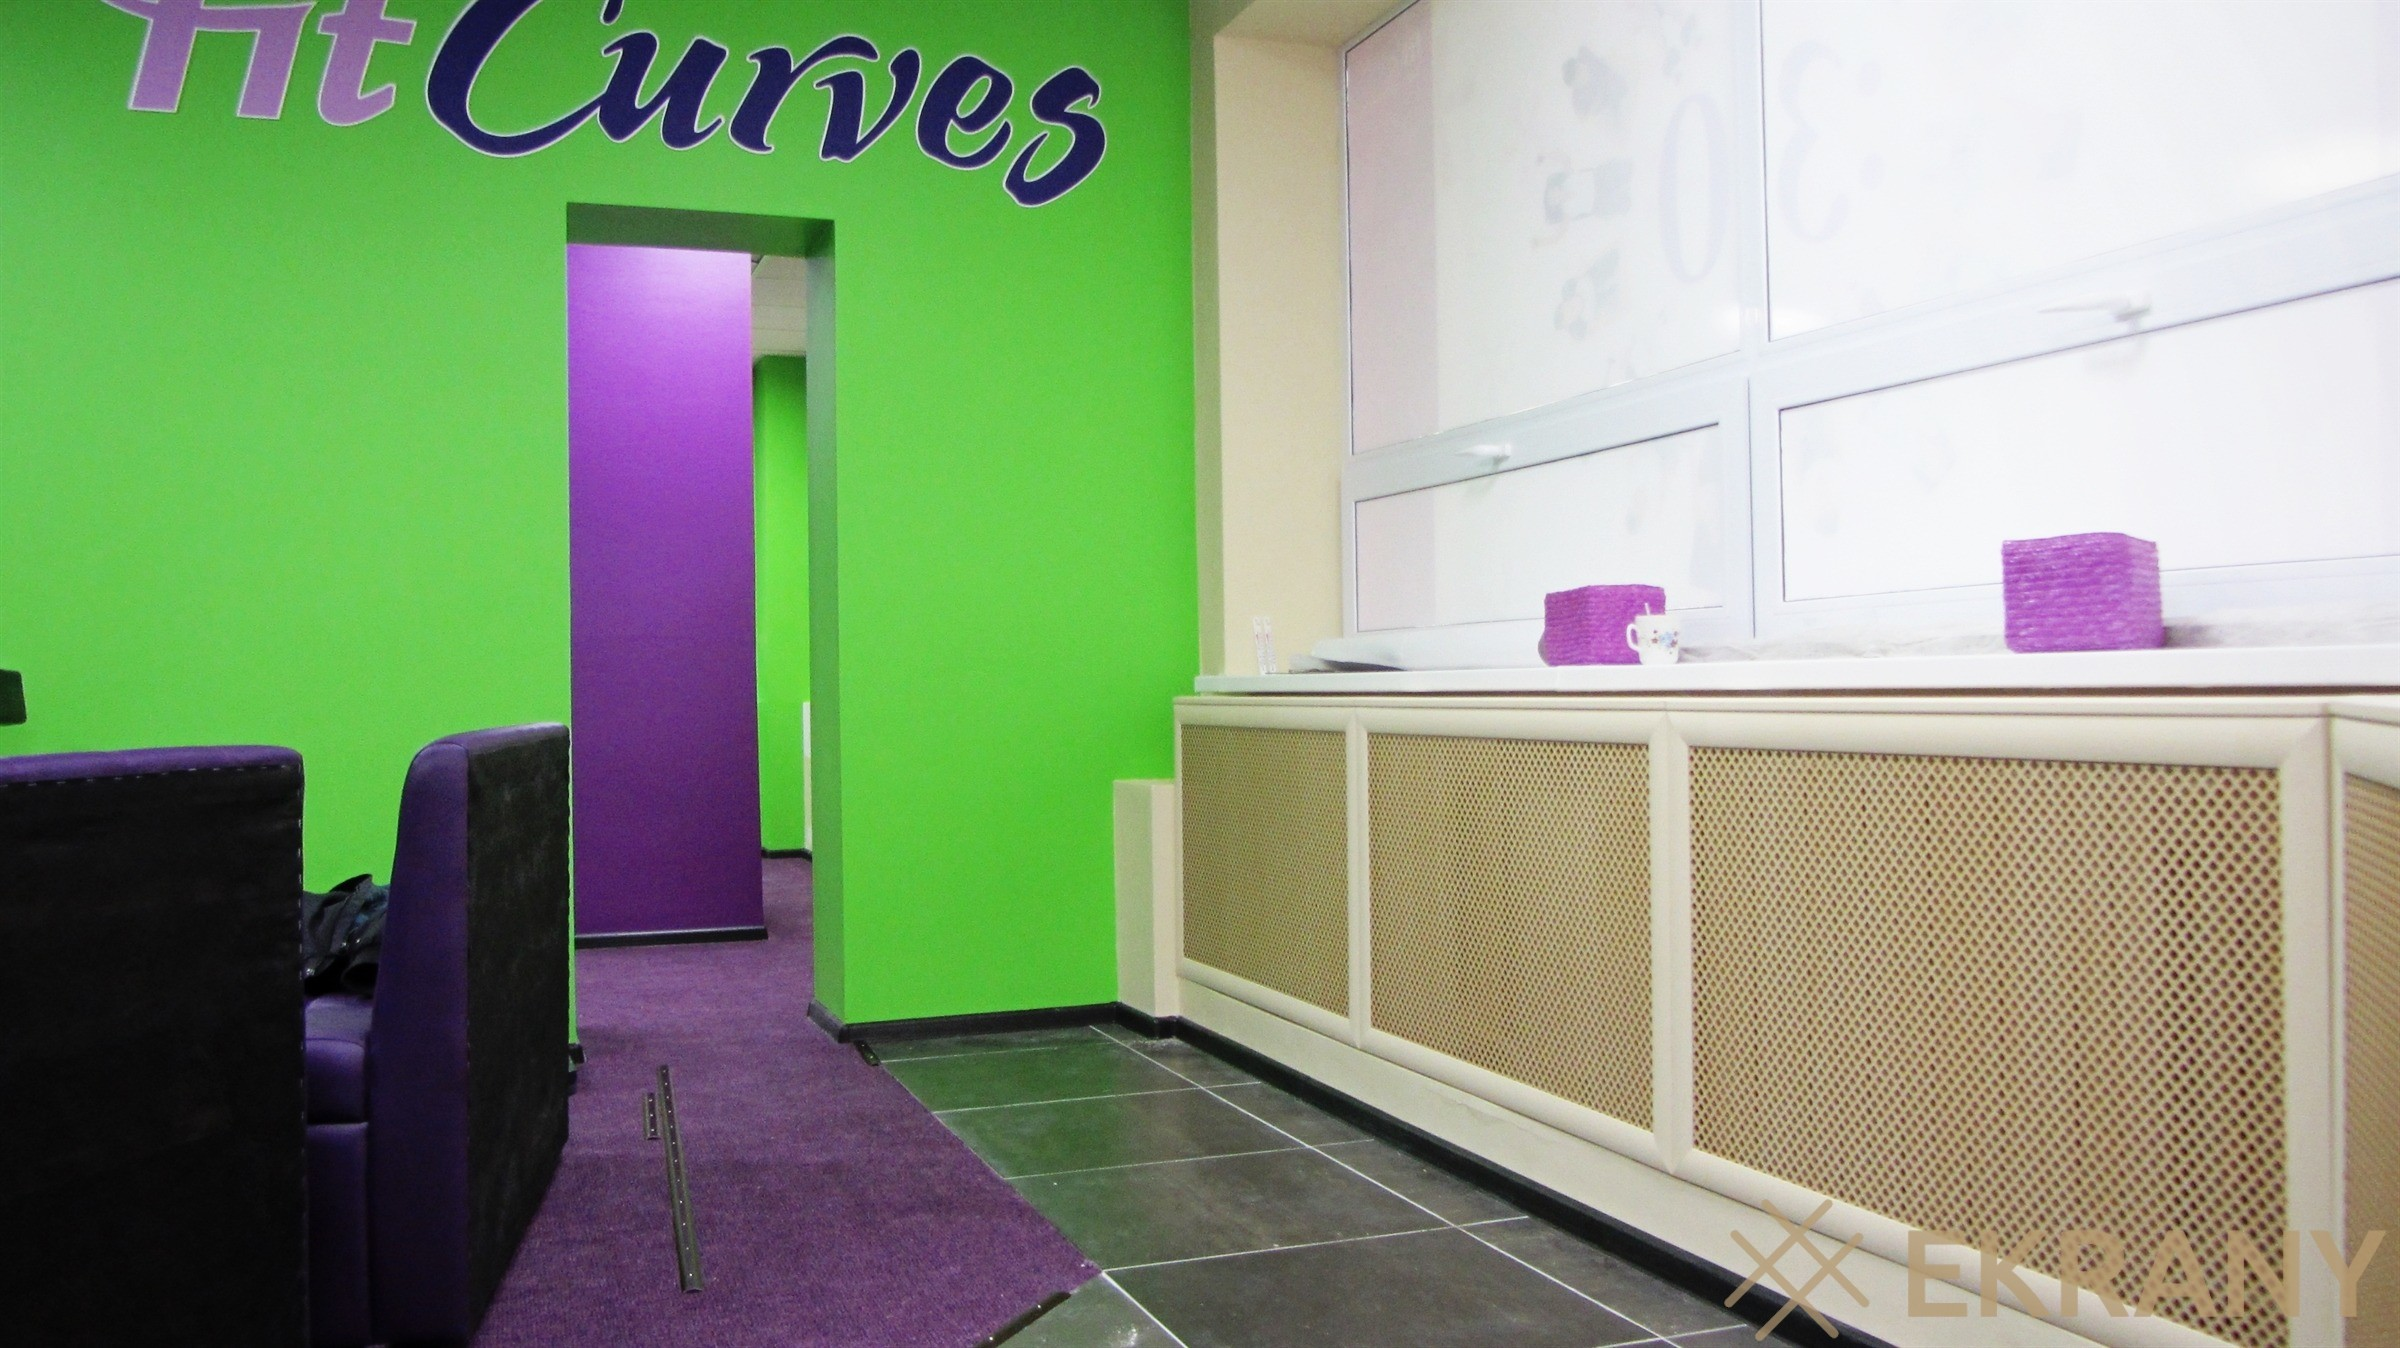 fit curves, Минск